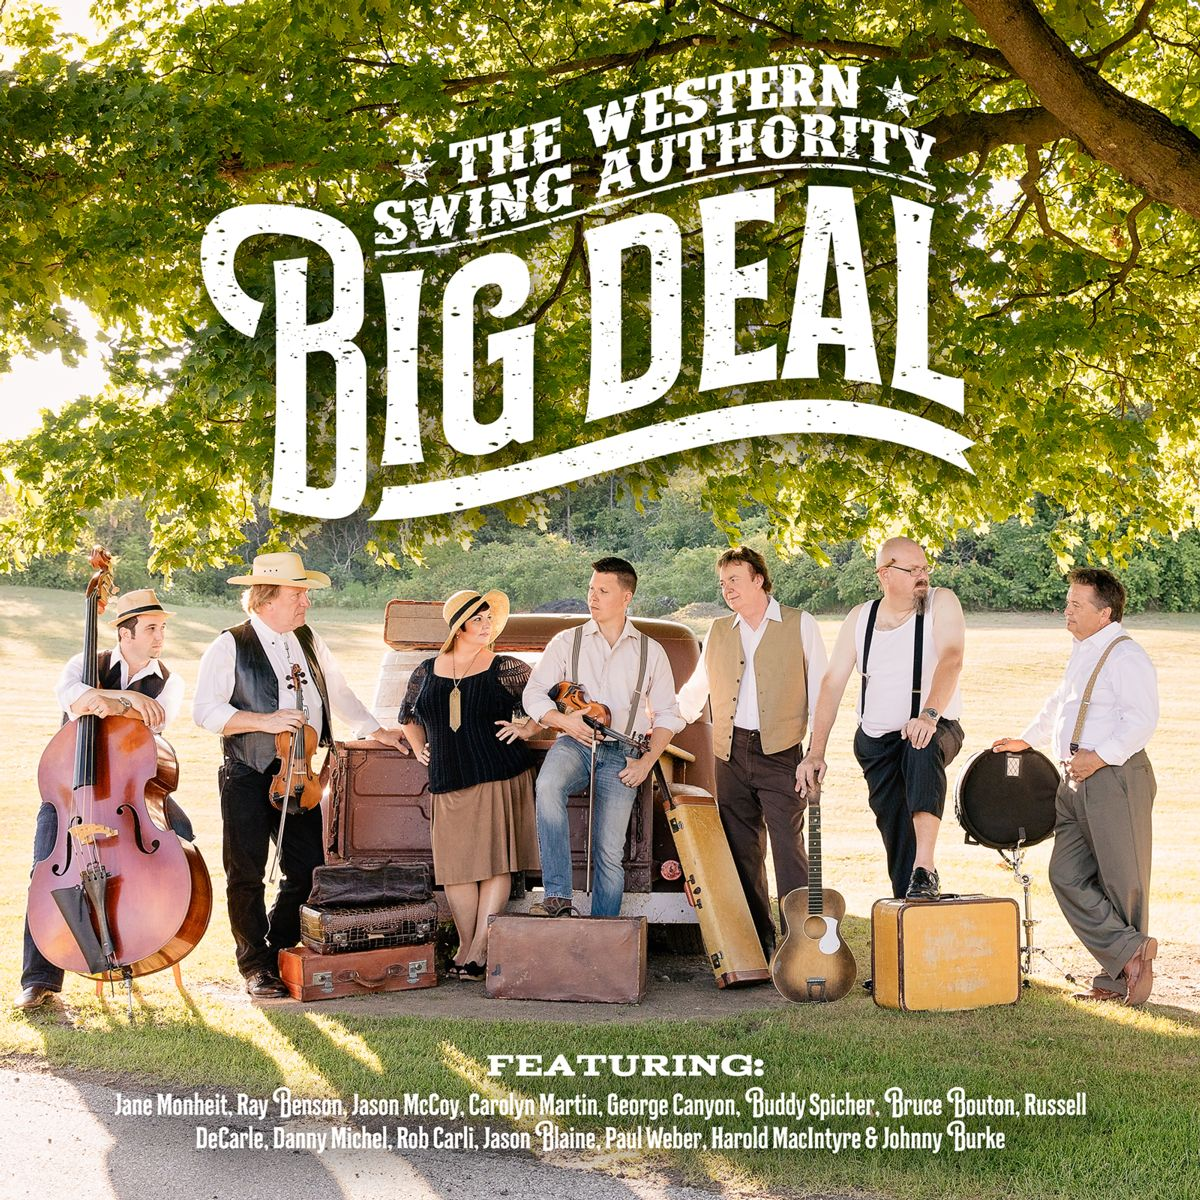 Sept 12, 2019 Western Swing Authority on Campfire Cafe